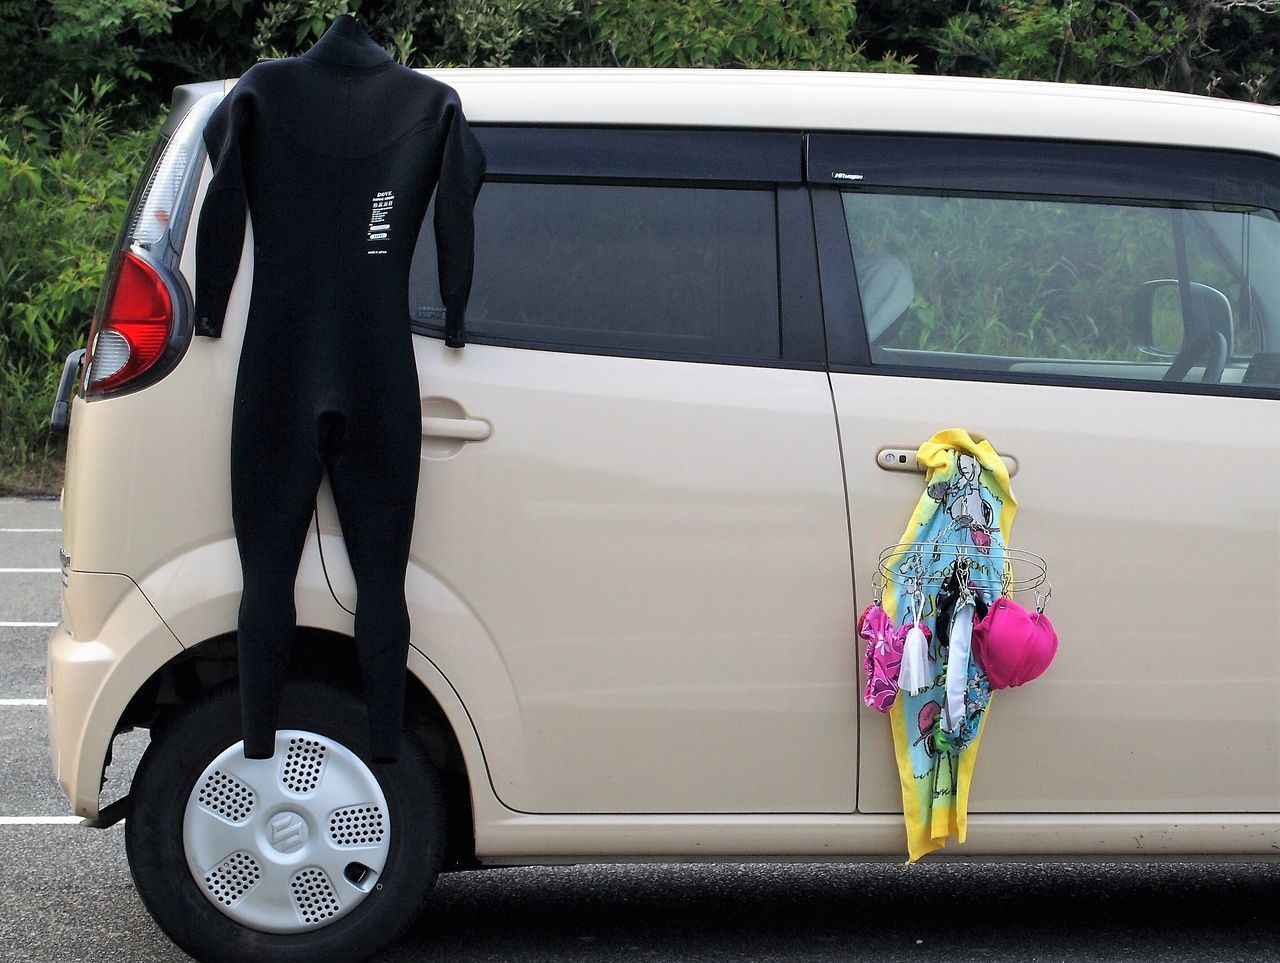 Bathing Suit  Beach Life Bikini Time❤ Car Japan Hyuga Land Vehicle Live For The Story Small Car Surfing Paradise Wetsuit